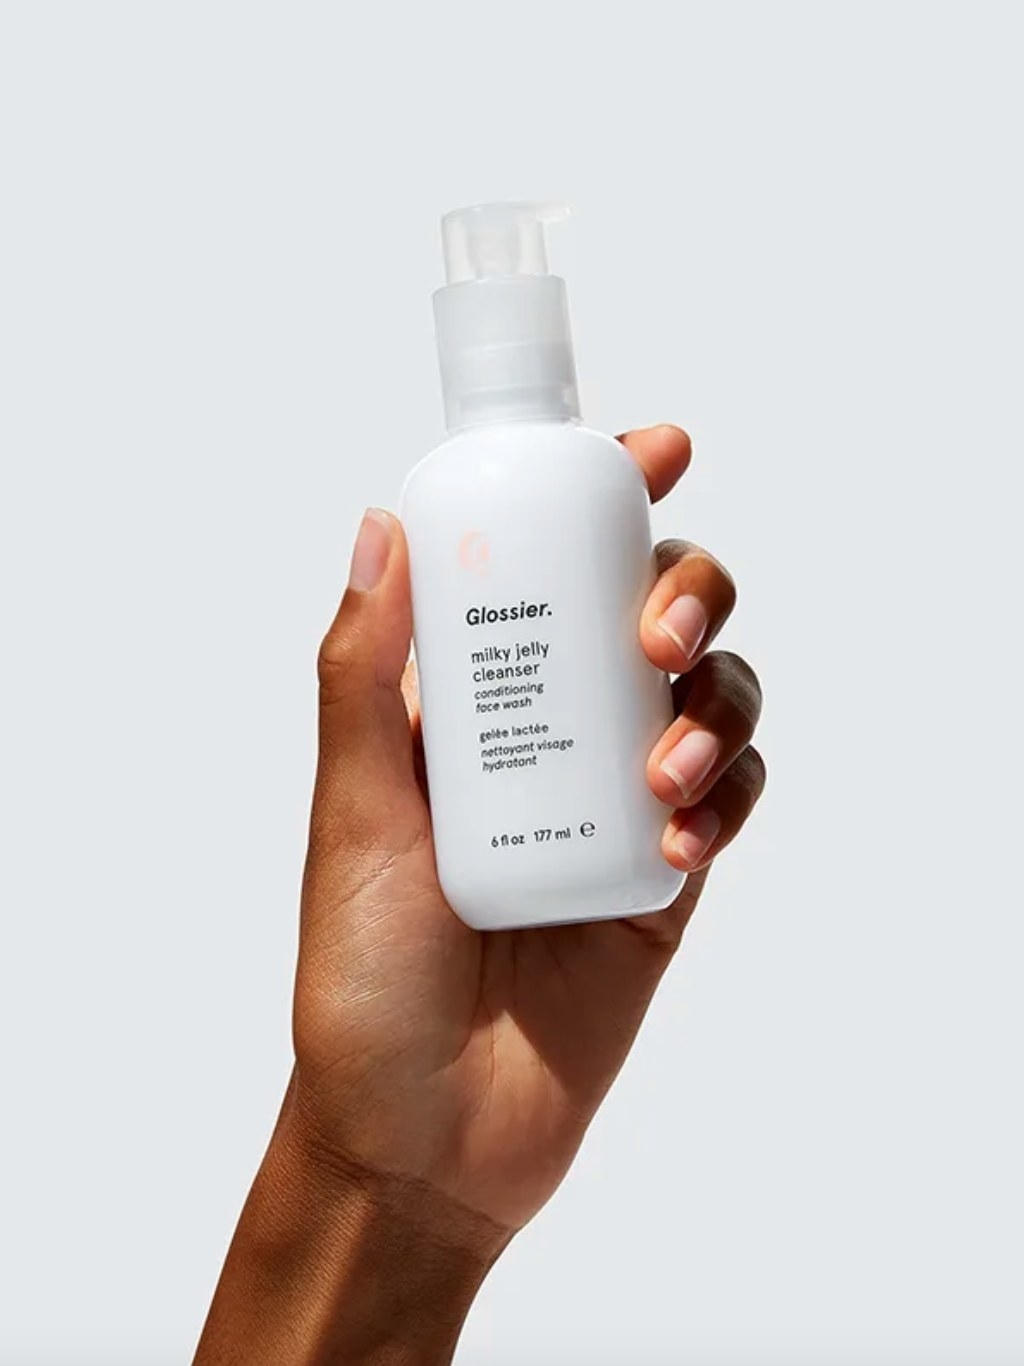 The Glossier milky jelly cleanser in a white bottle being held by a model